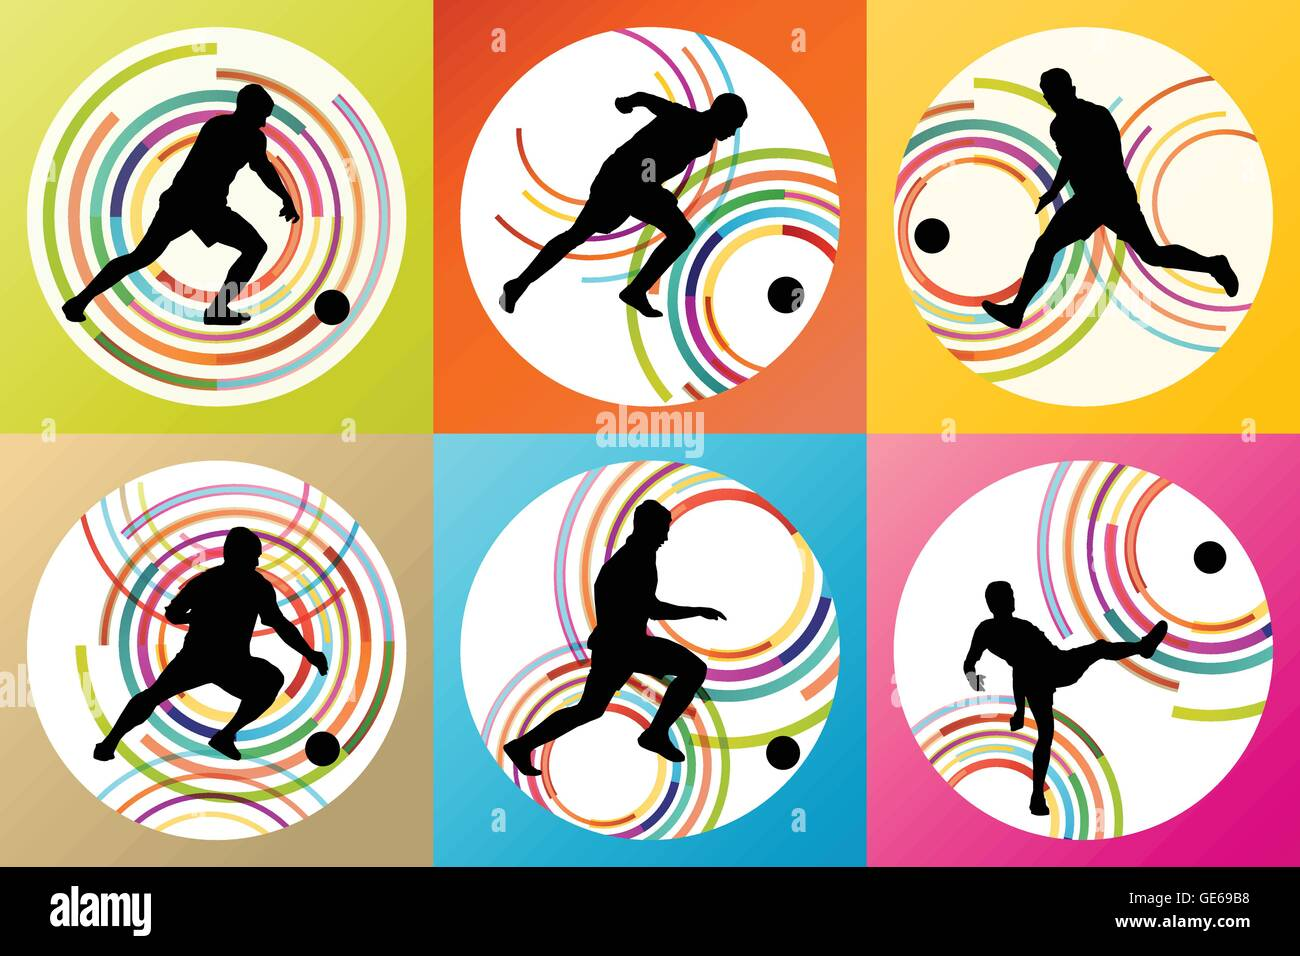 Soccer football player silhouette vector background set for poster - Stock Vector